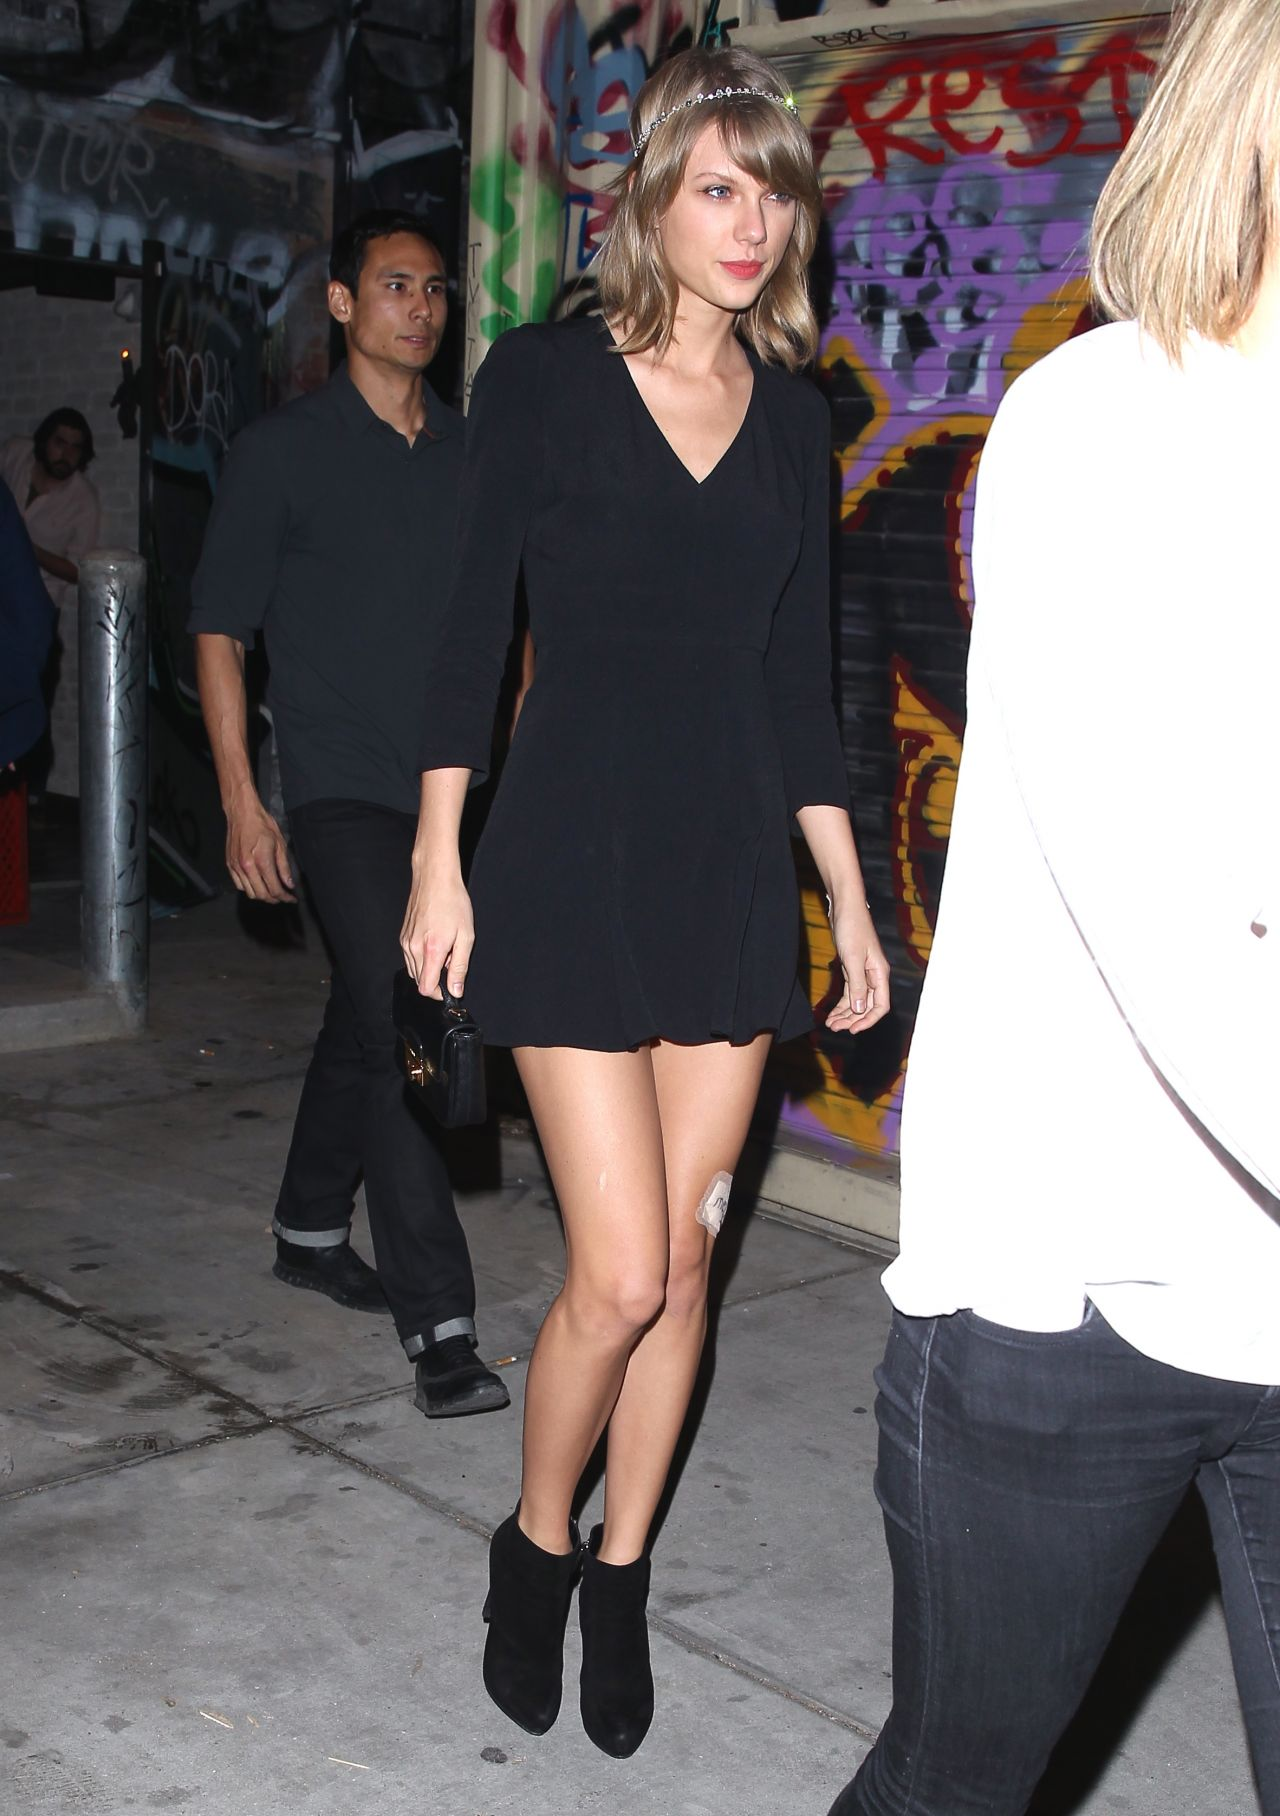 taylor-swift-night-out-style-los-angeles-march-2015_4